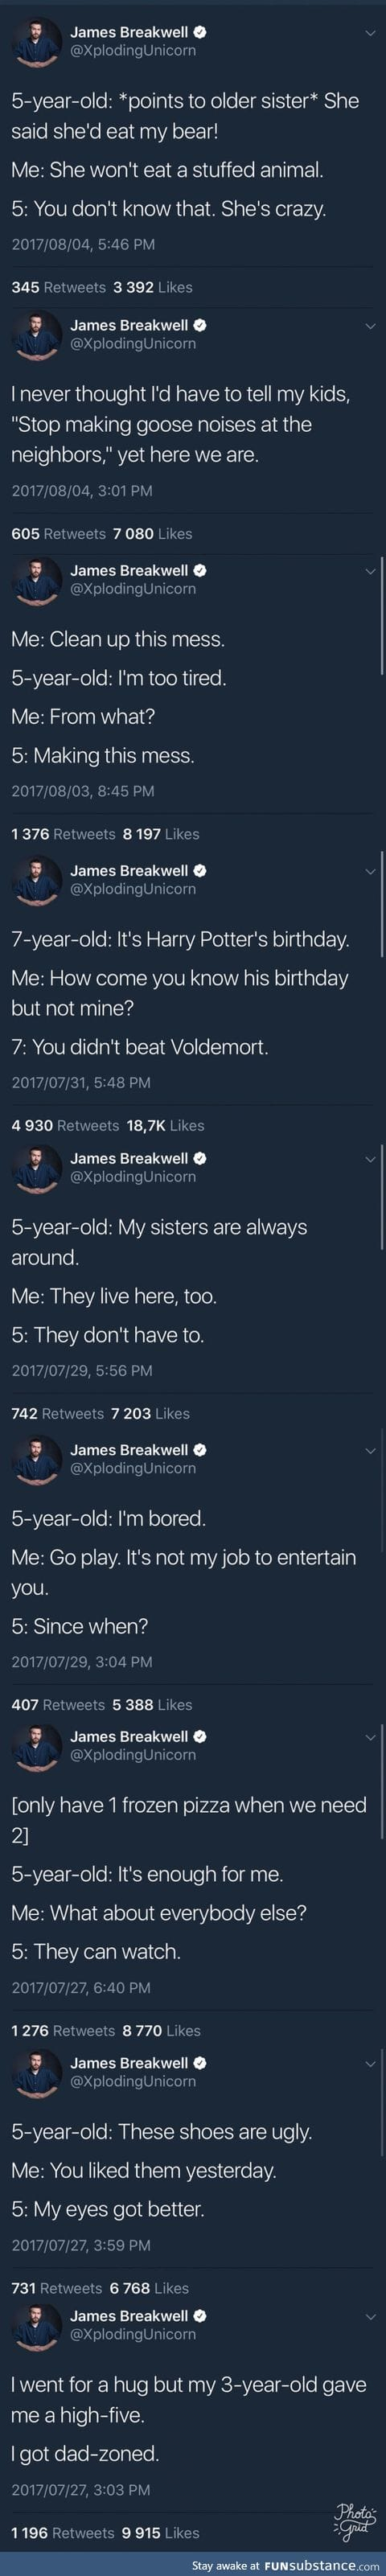 Just a guy on twitter who posts things his 4 kids say